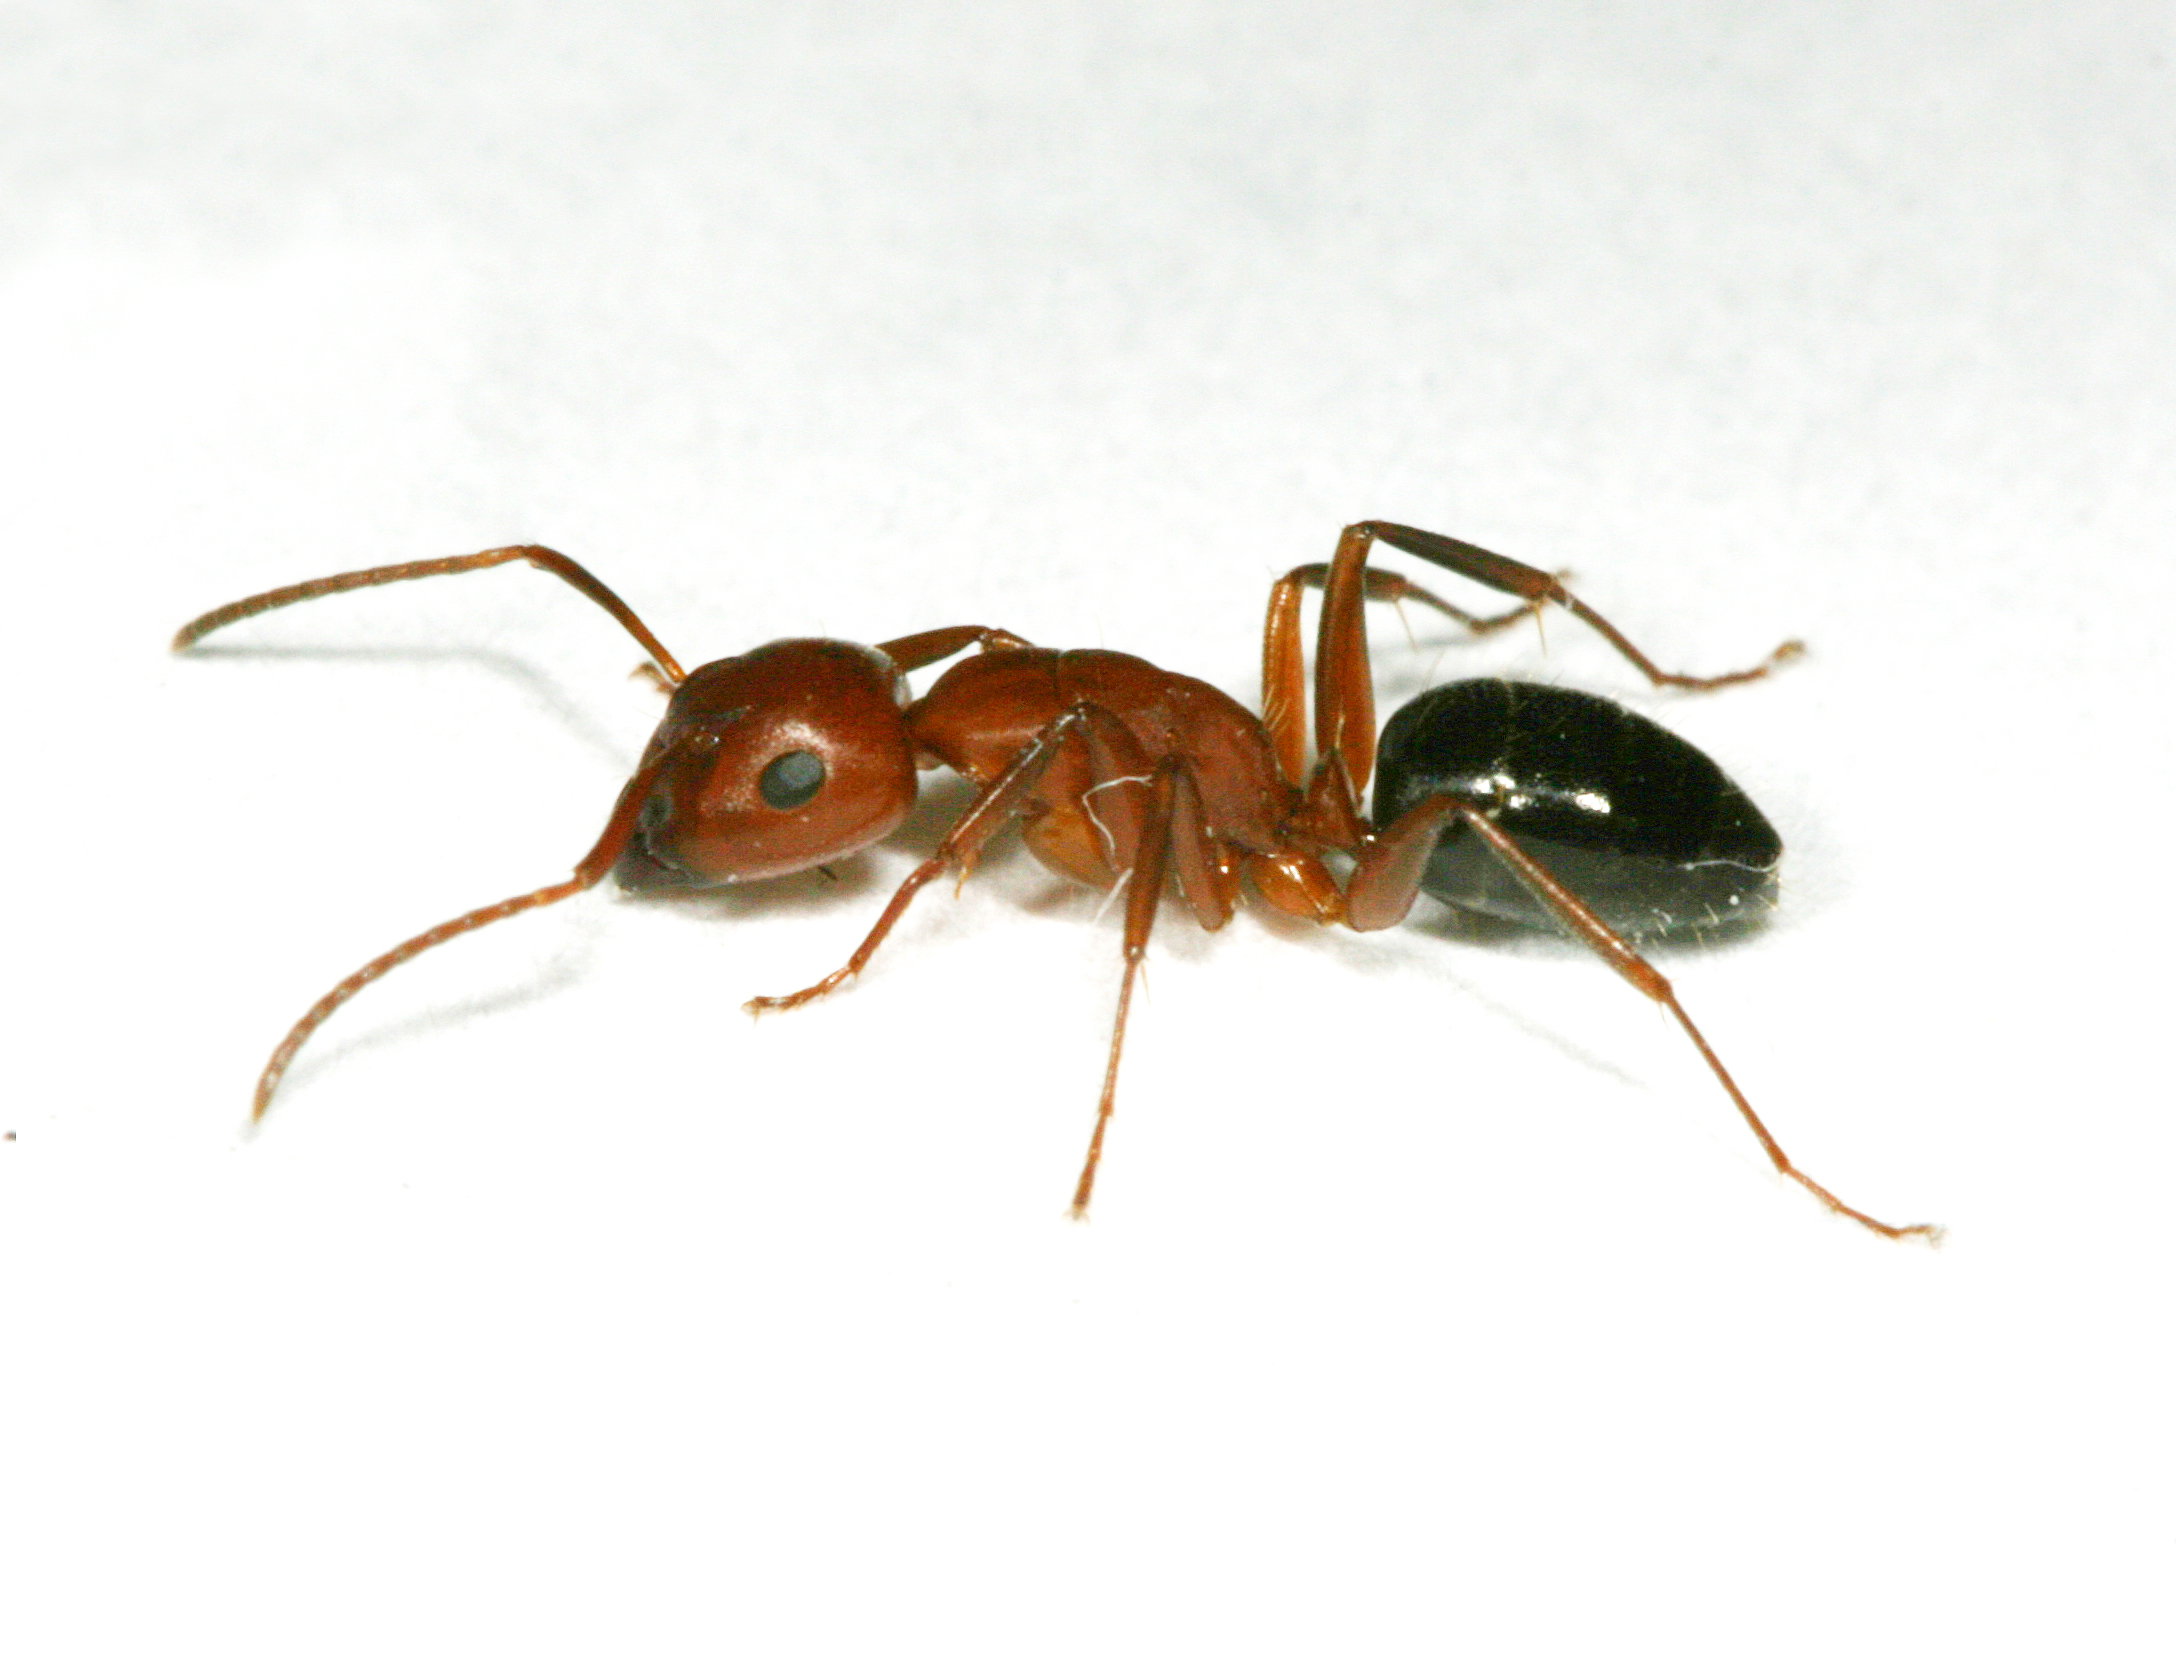 When ants invade - Insects in the City